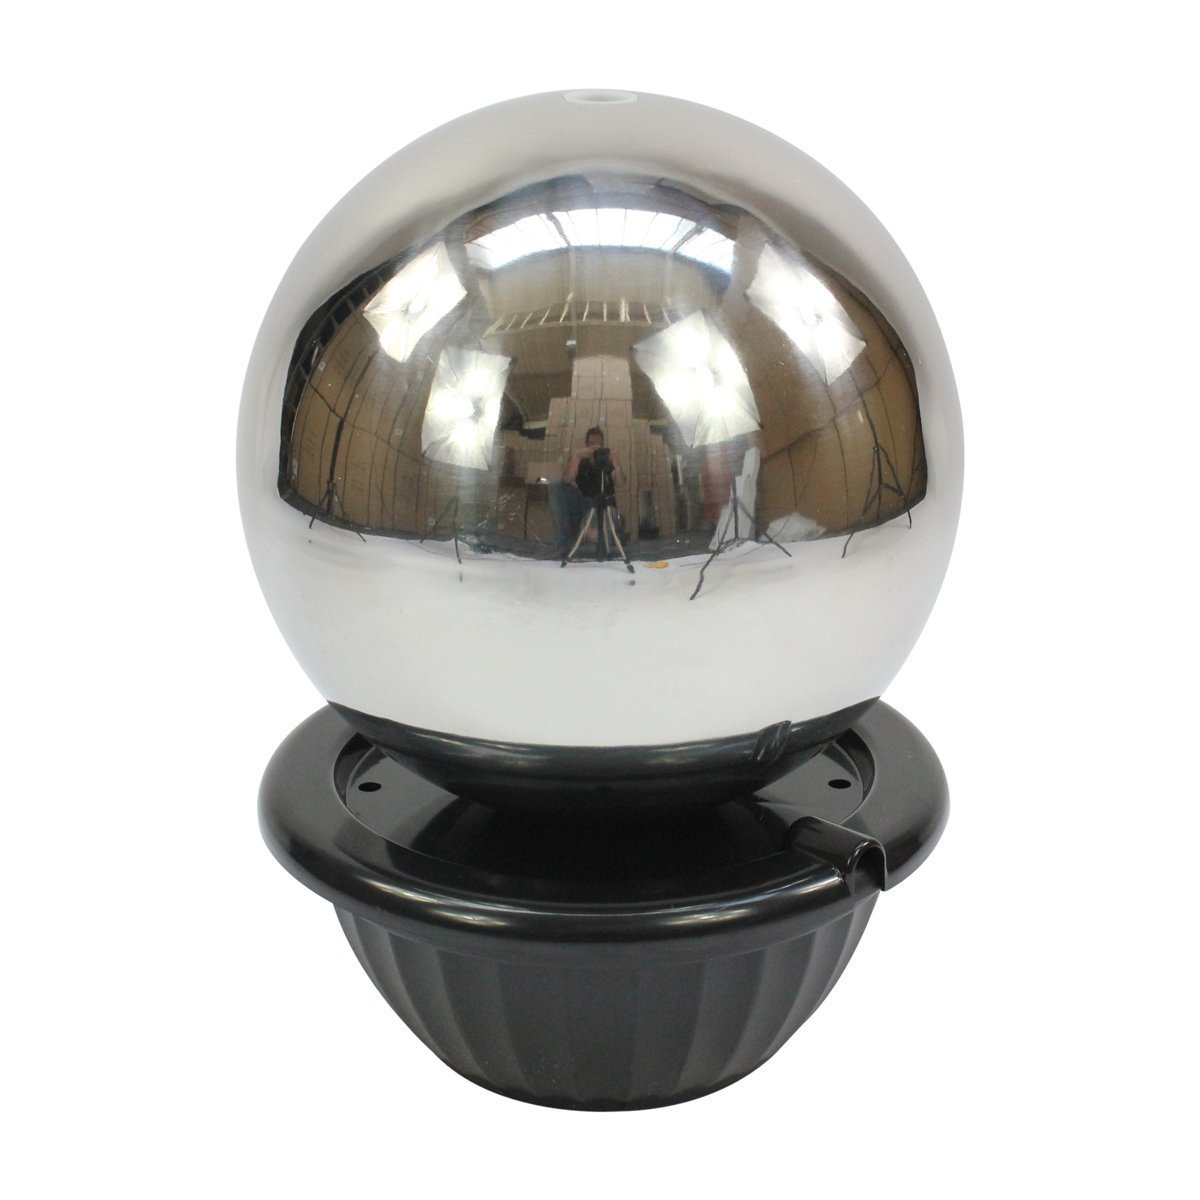 Direct Global Trading 40cm Sphere Stainless Steel Garden Water Feature with LED Lights